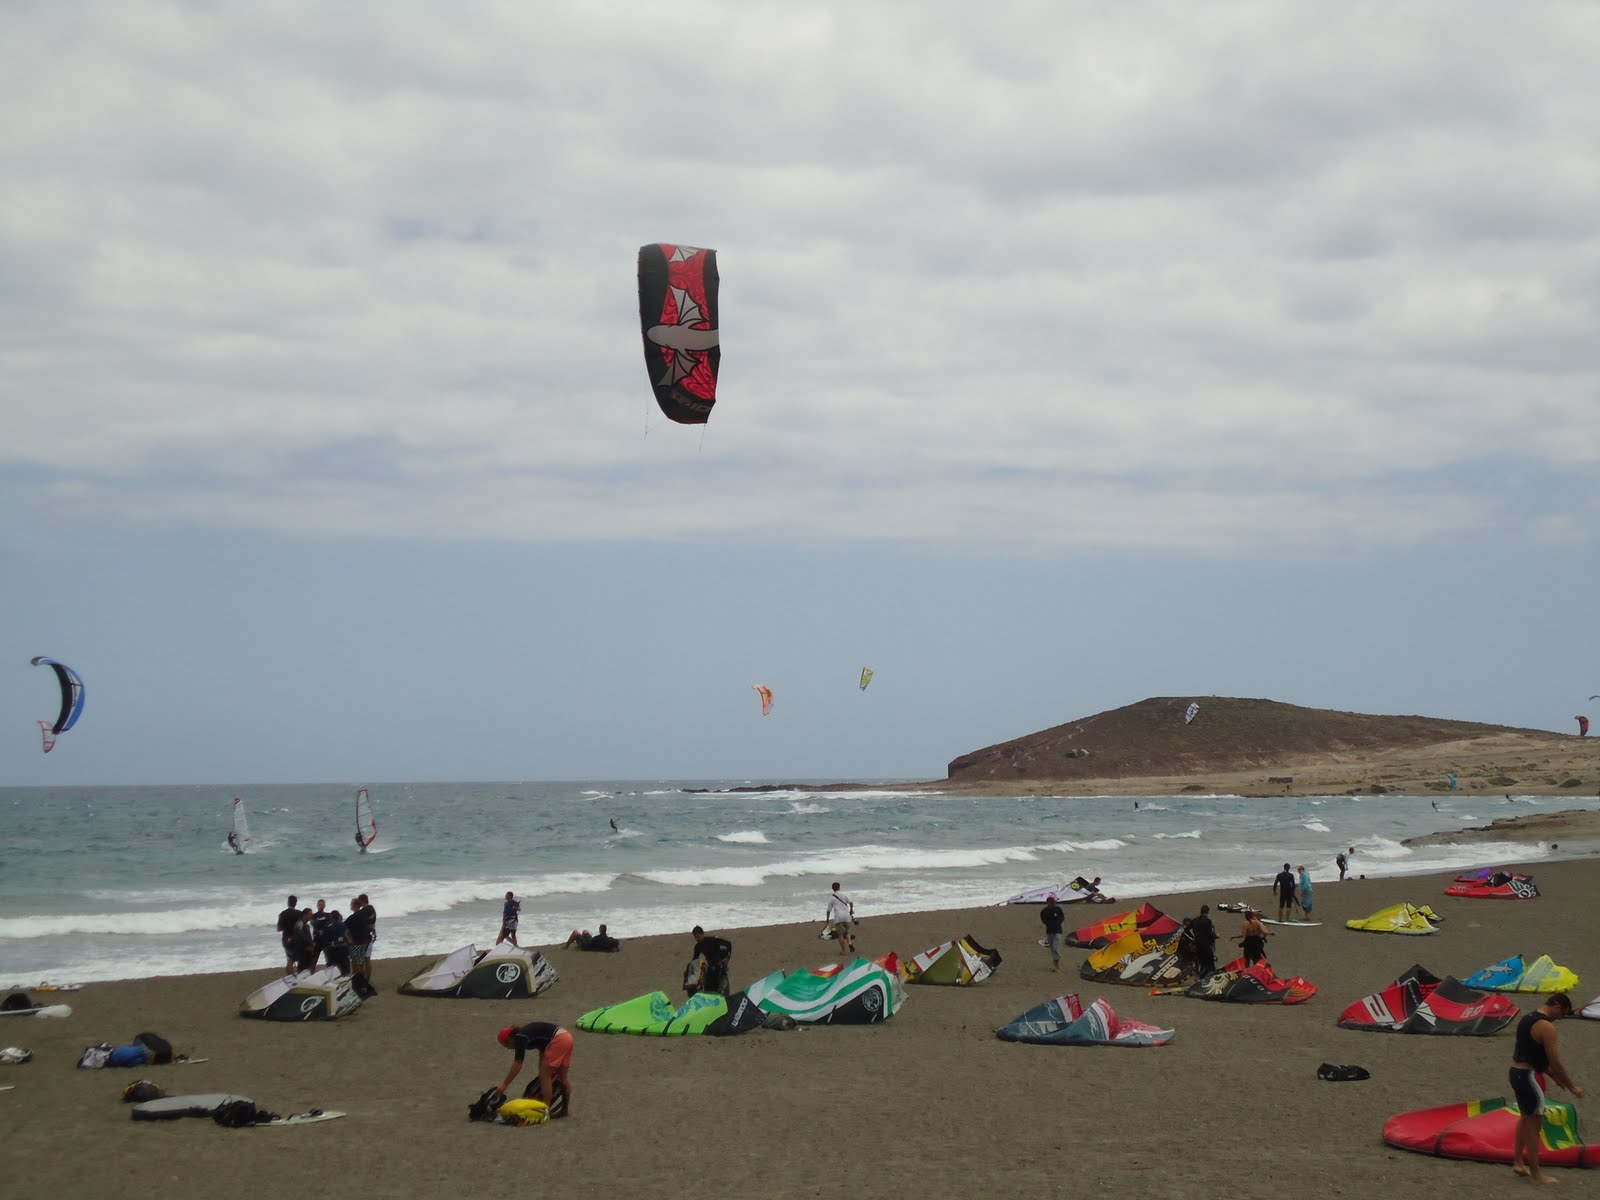 Surfing in Tenerife - Regency Country Club